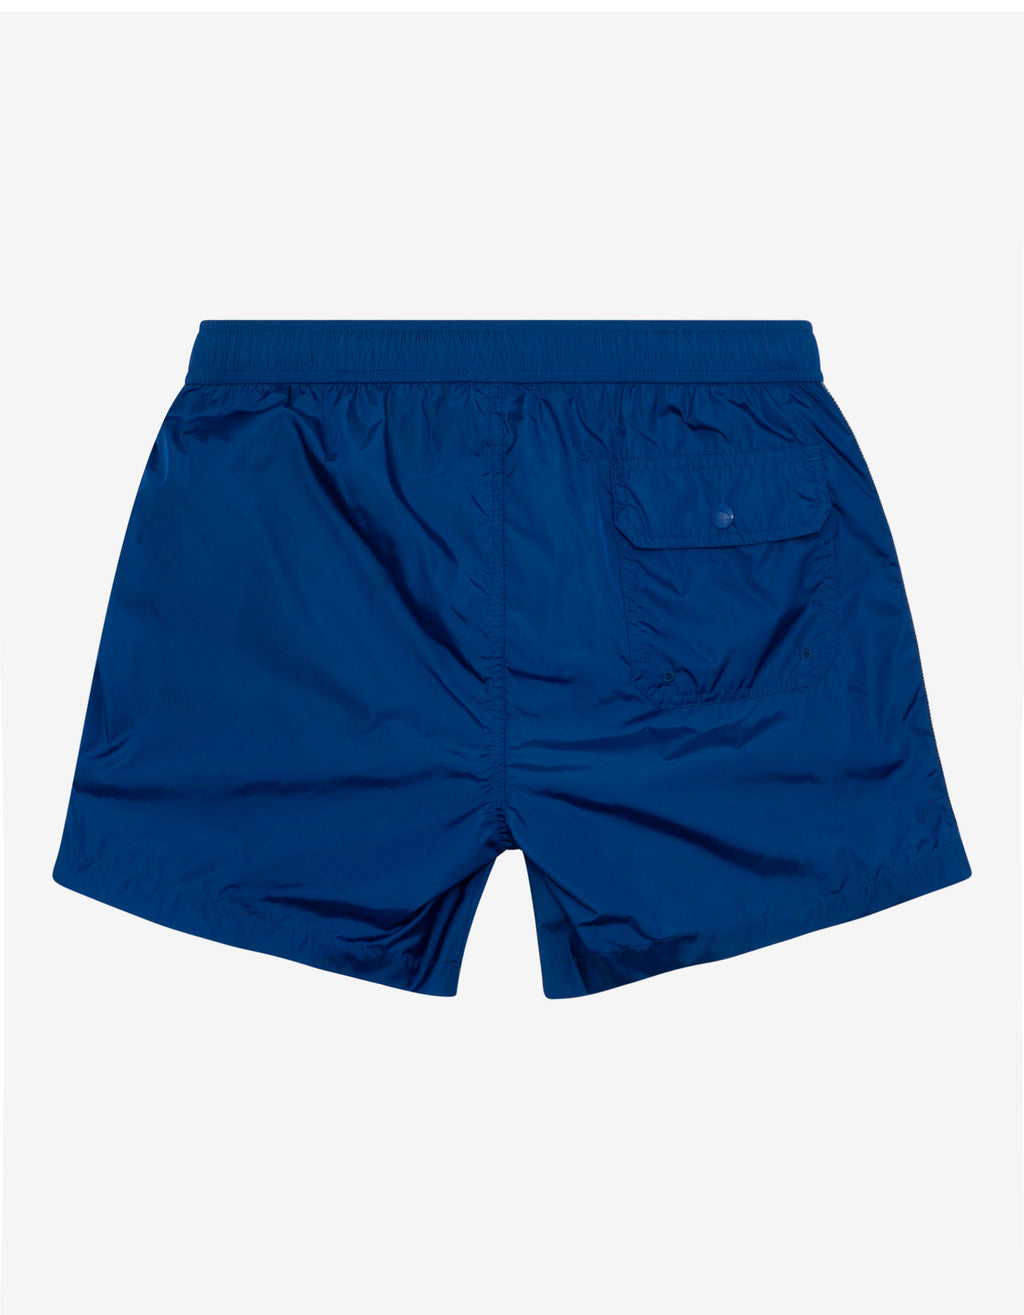 Blue Tricolour Seam Swim Shorts